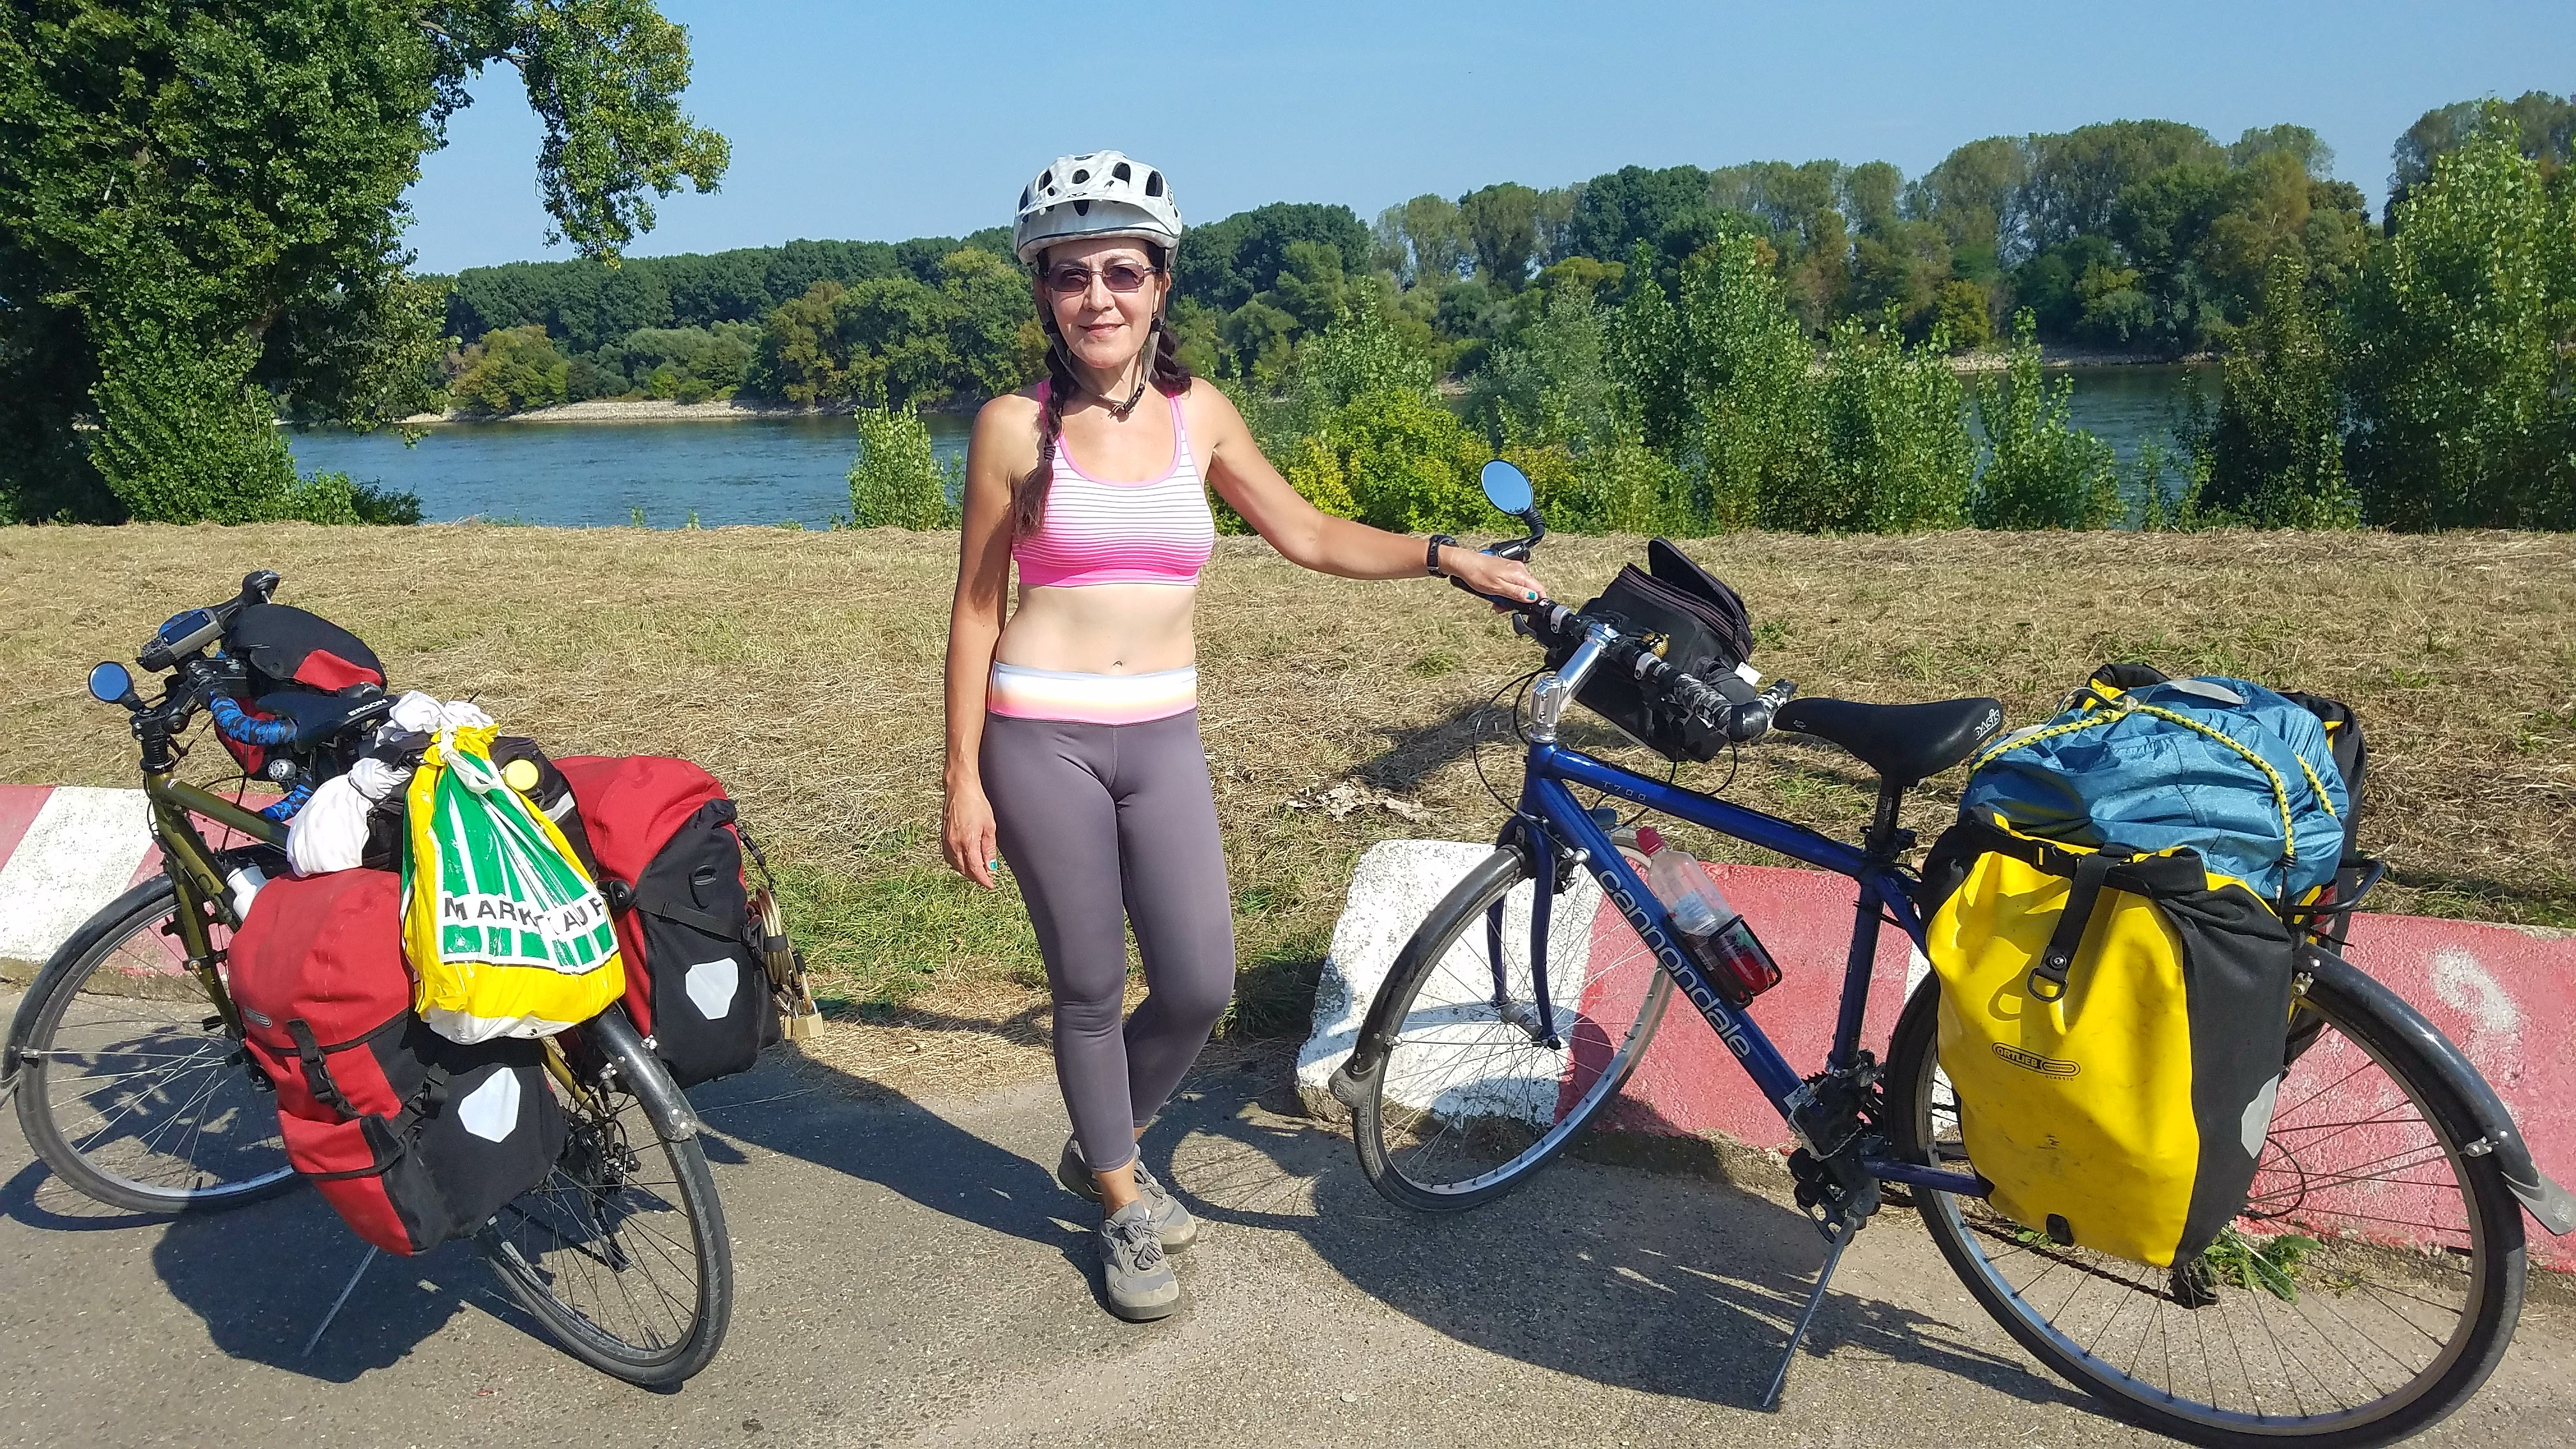 Bicycling the length of the Rhine River.